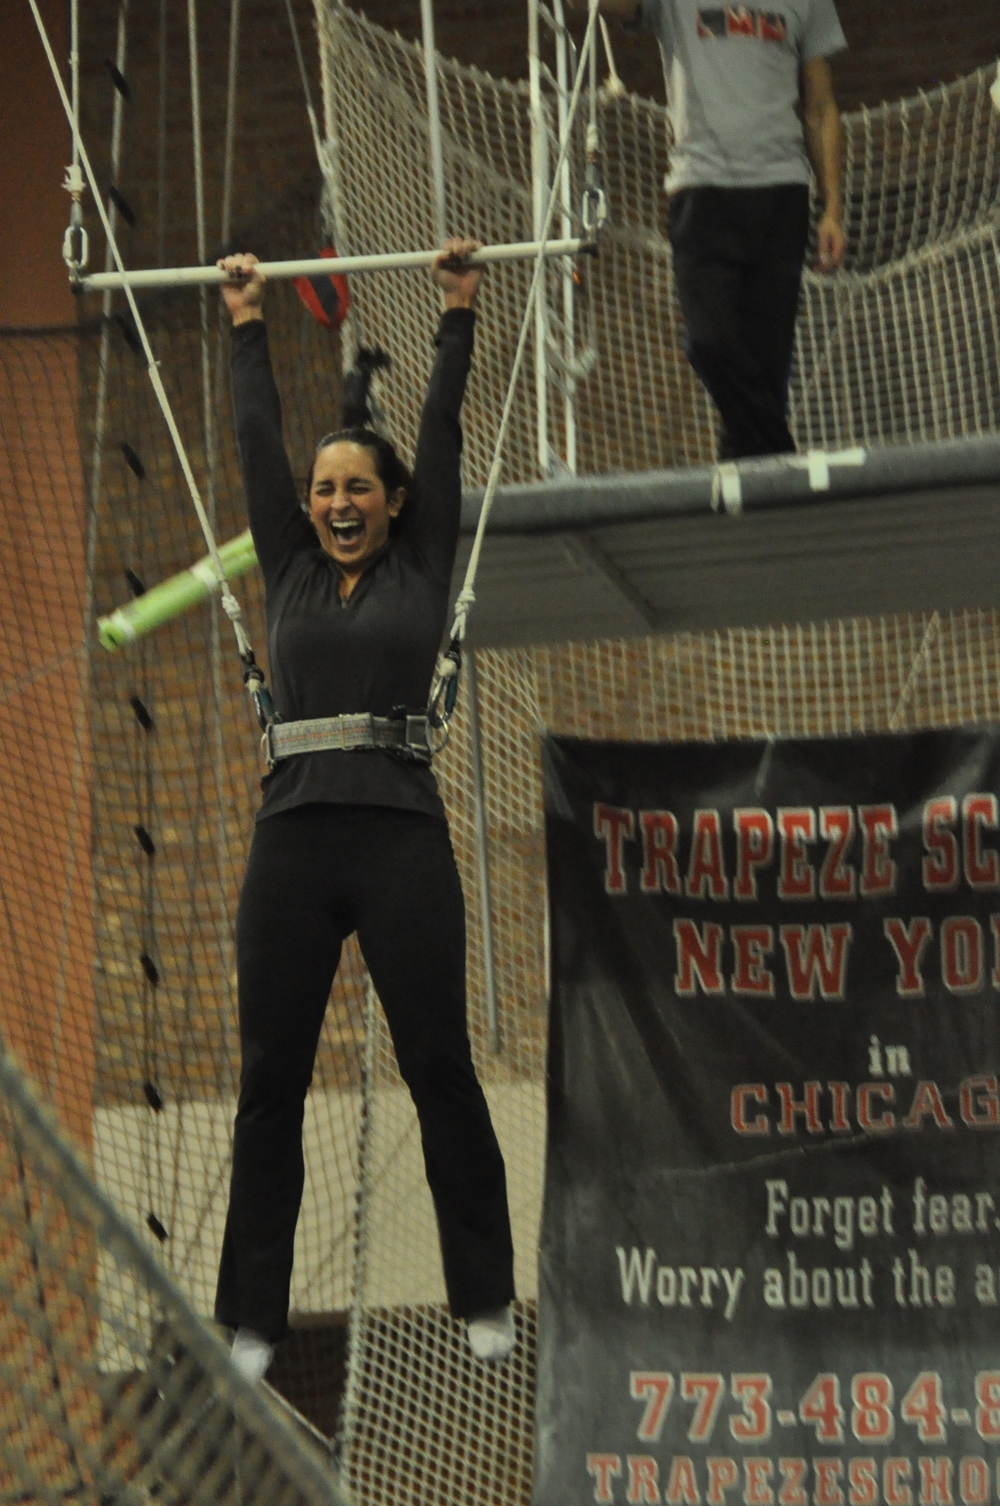 Trapeze Freak Out